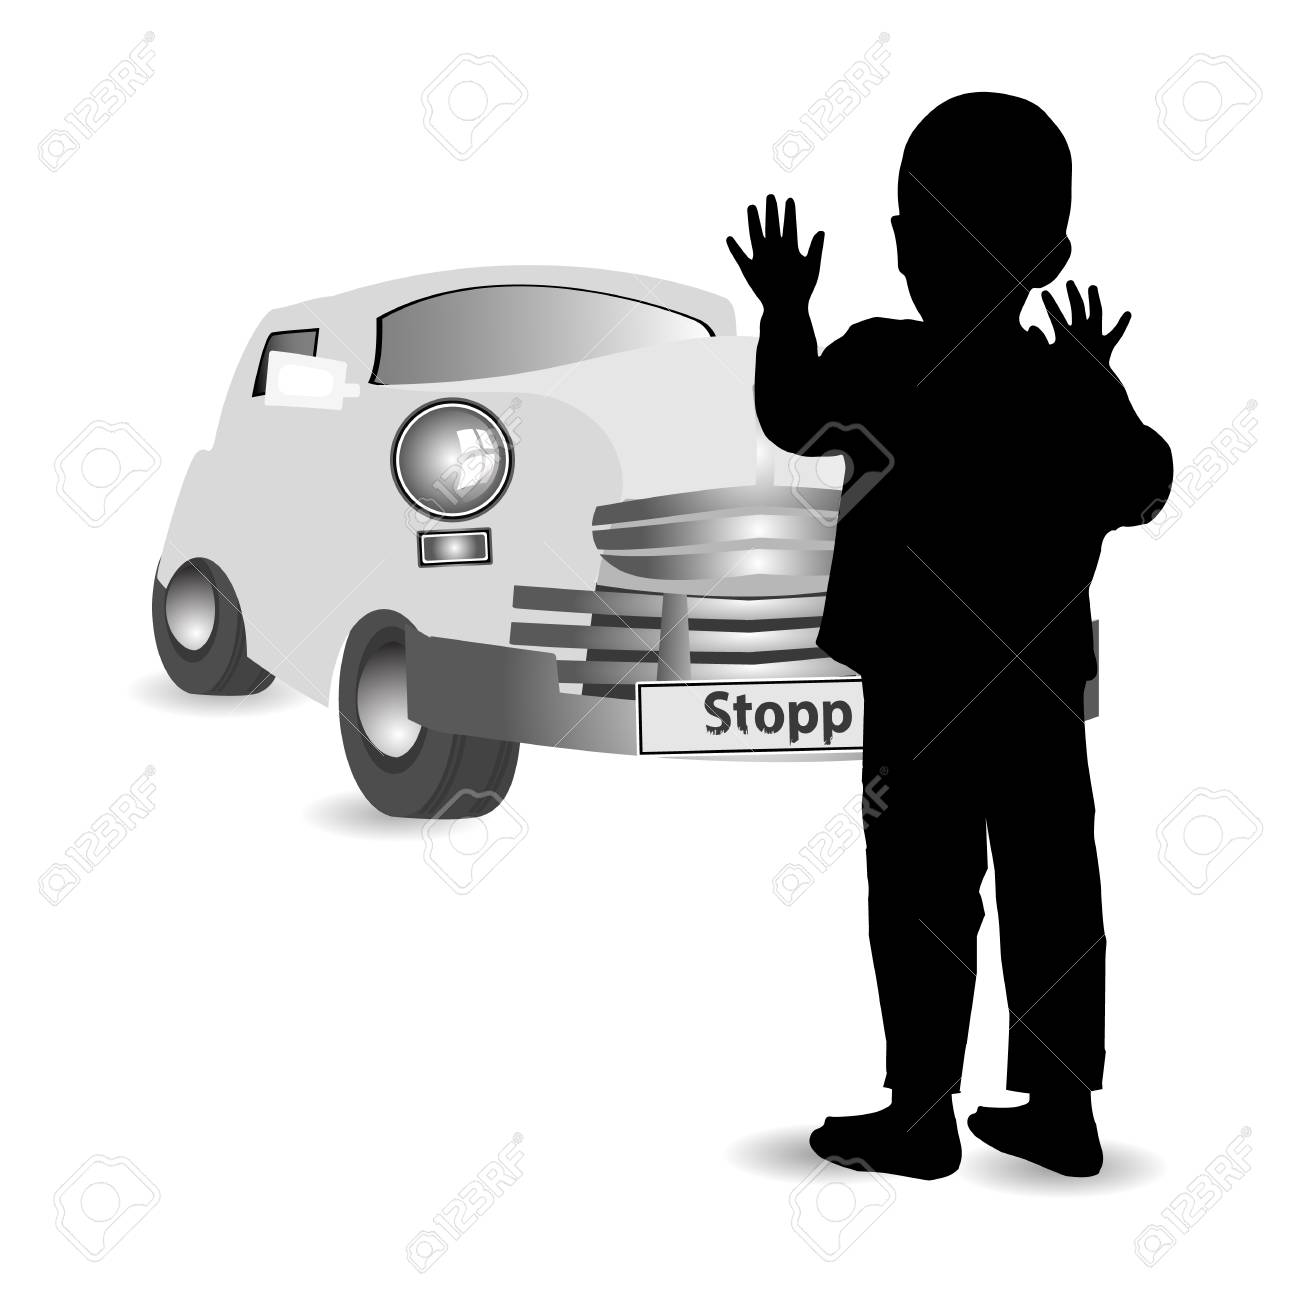 Trabant Clipart Child Safety On The Ground Car Accident Concept Silhouette